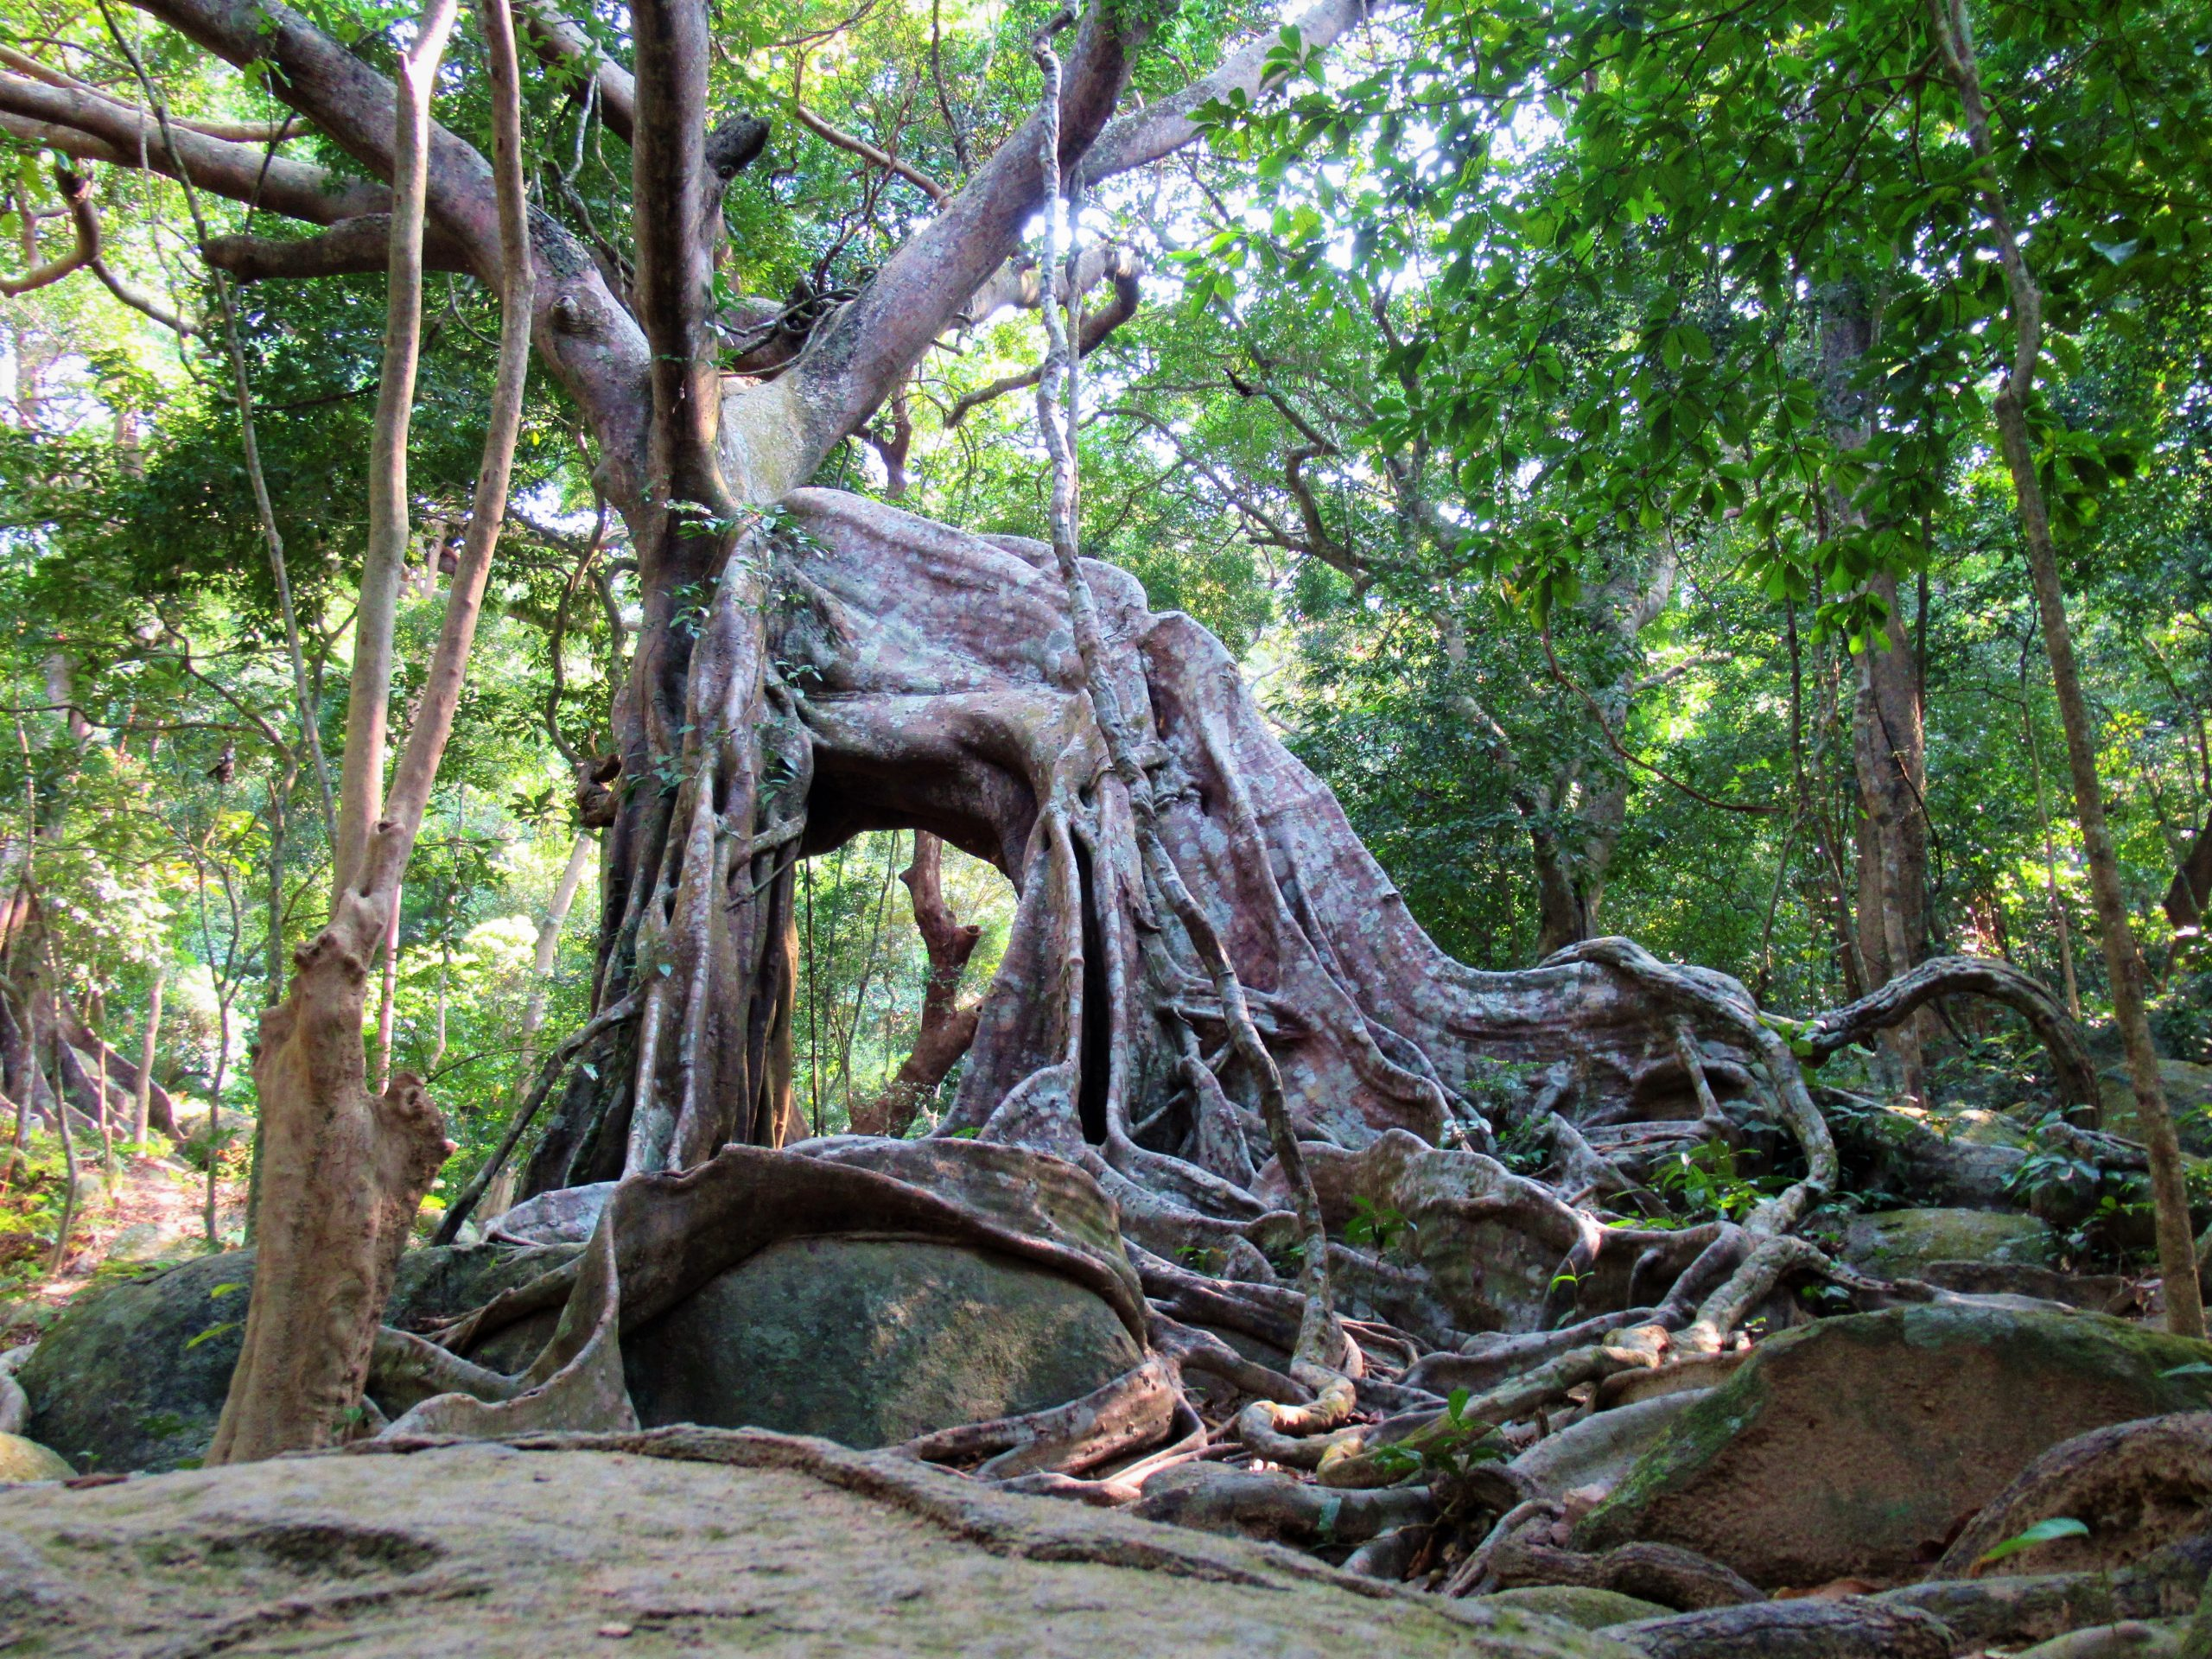 Twisted roots, vines & branches of an old banyan tree, Vietnam